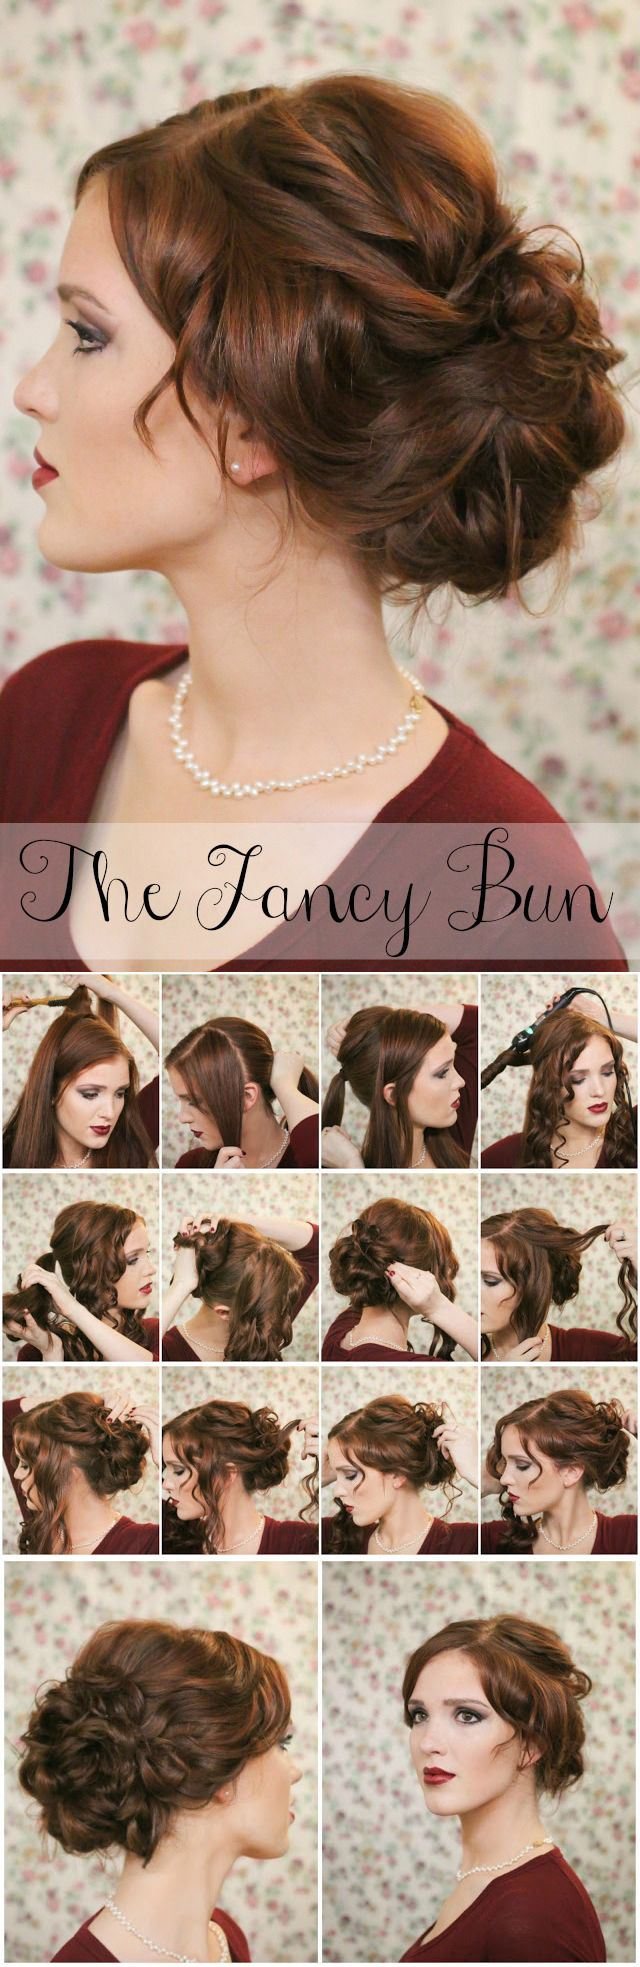 Swell Top 25 Messy Hair Bun Tutorials Perfect For Those Lazy Mornings Hairstyle Inspiration Daily Dogsangcom